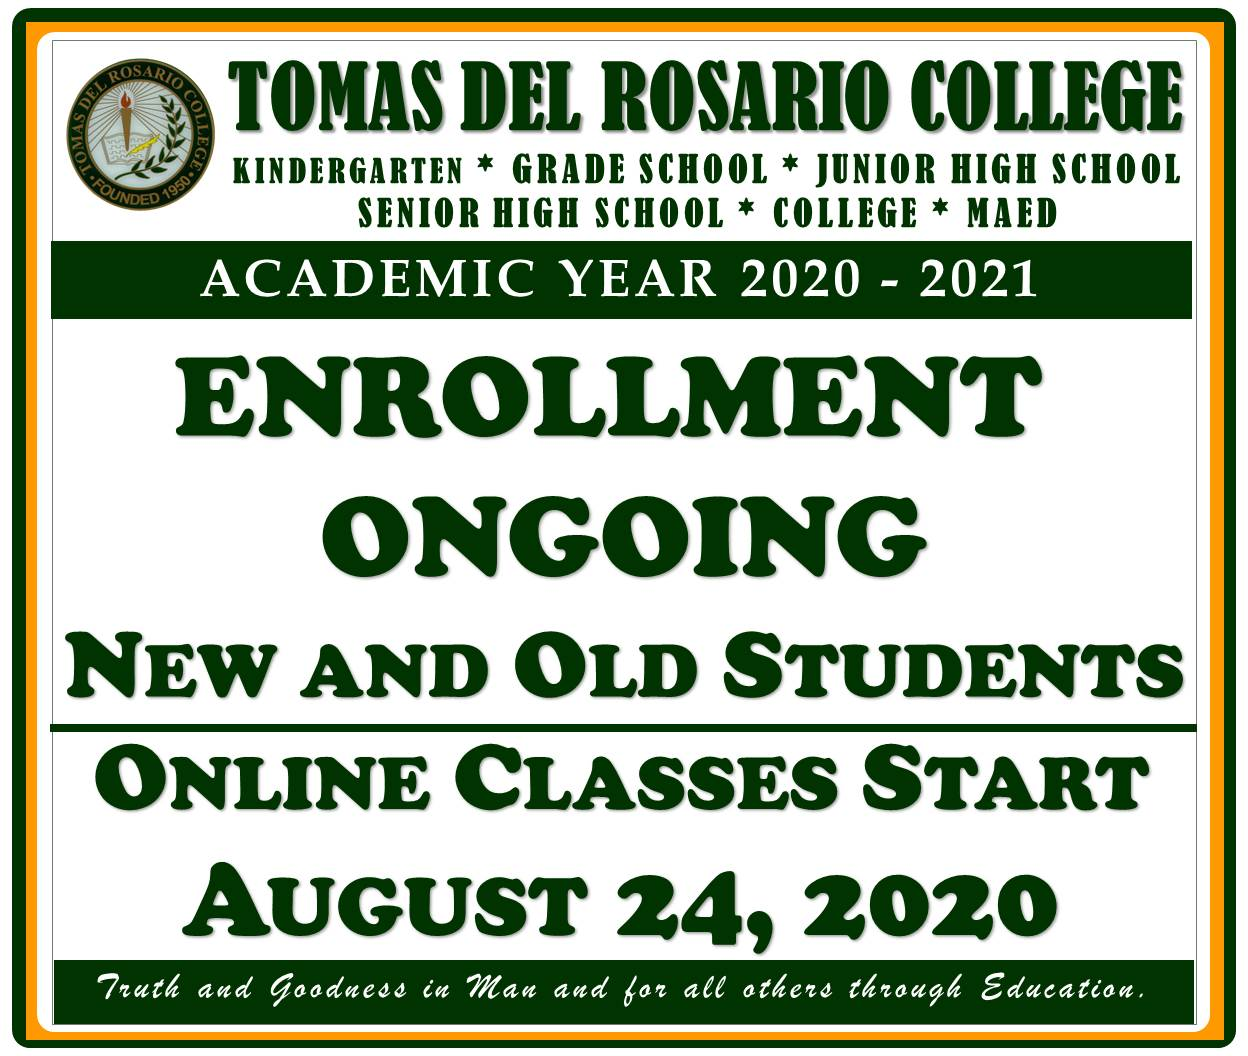 ENROLLMENT ONGOING FOR OLD STUDENTS - ALL LEVELS